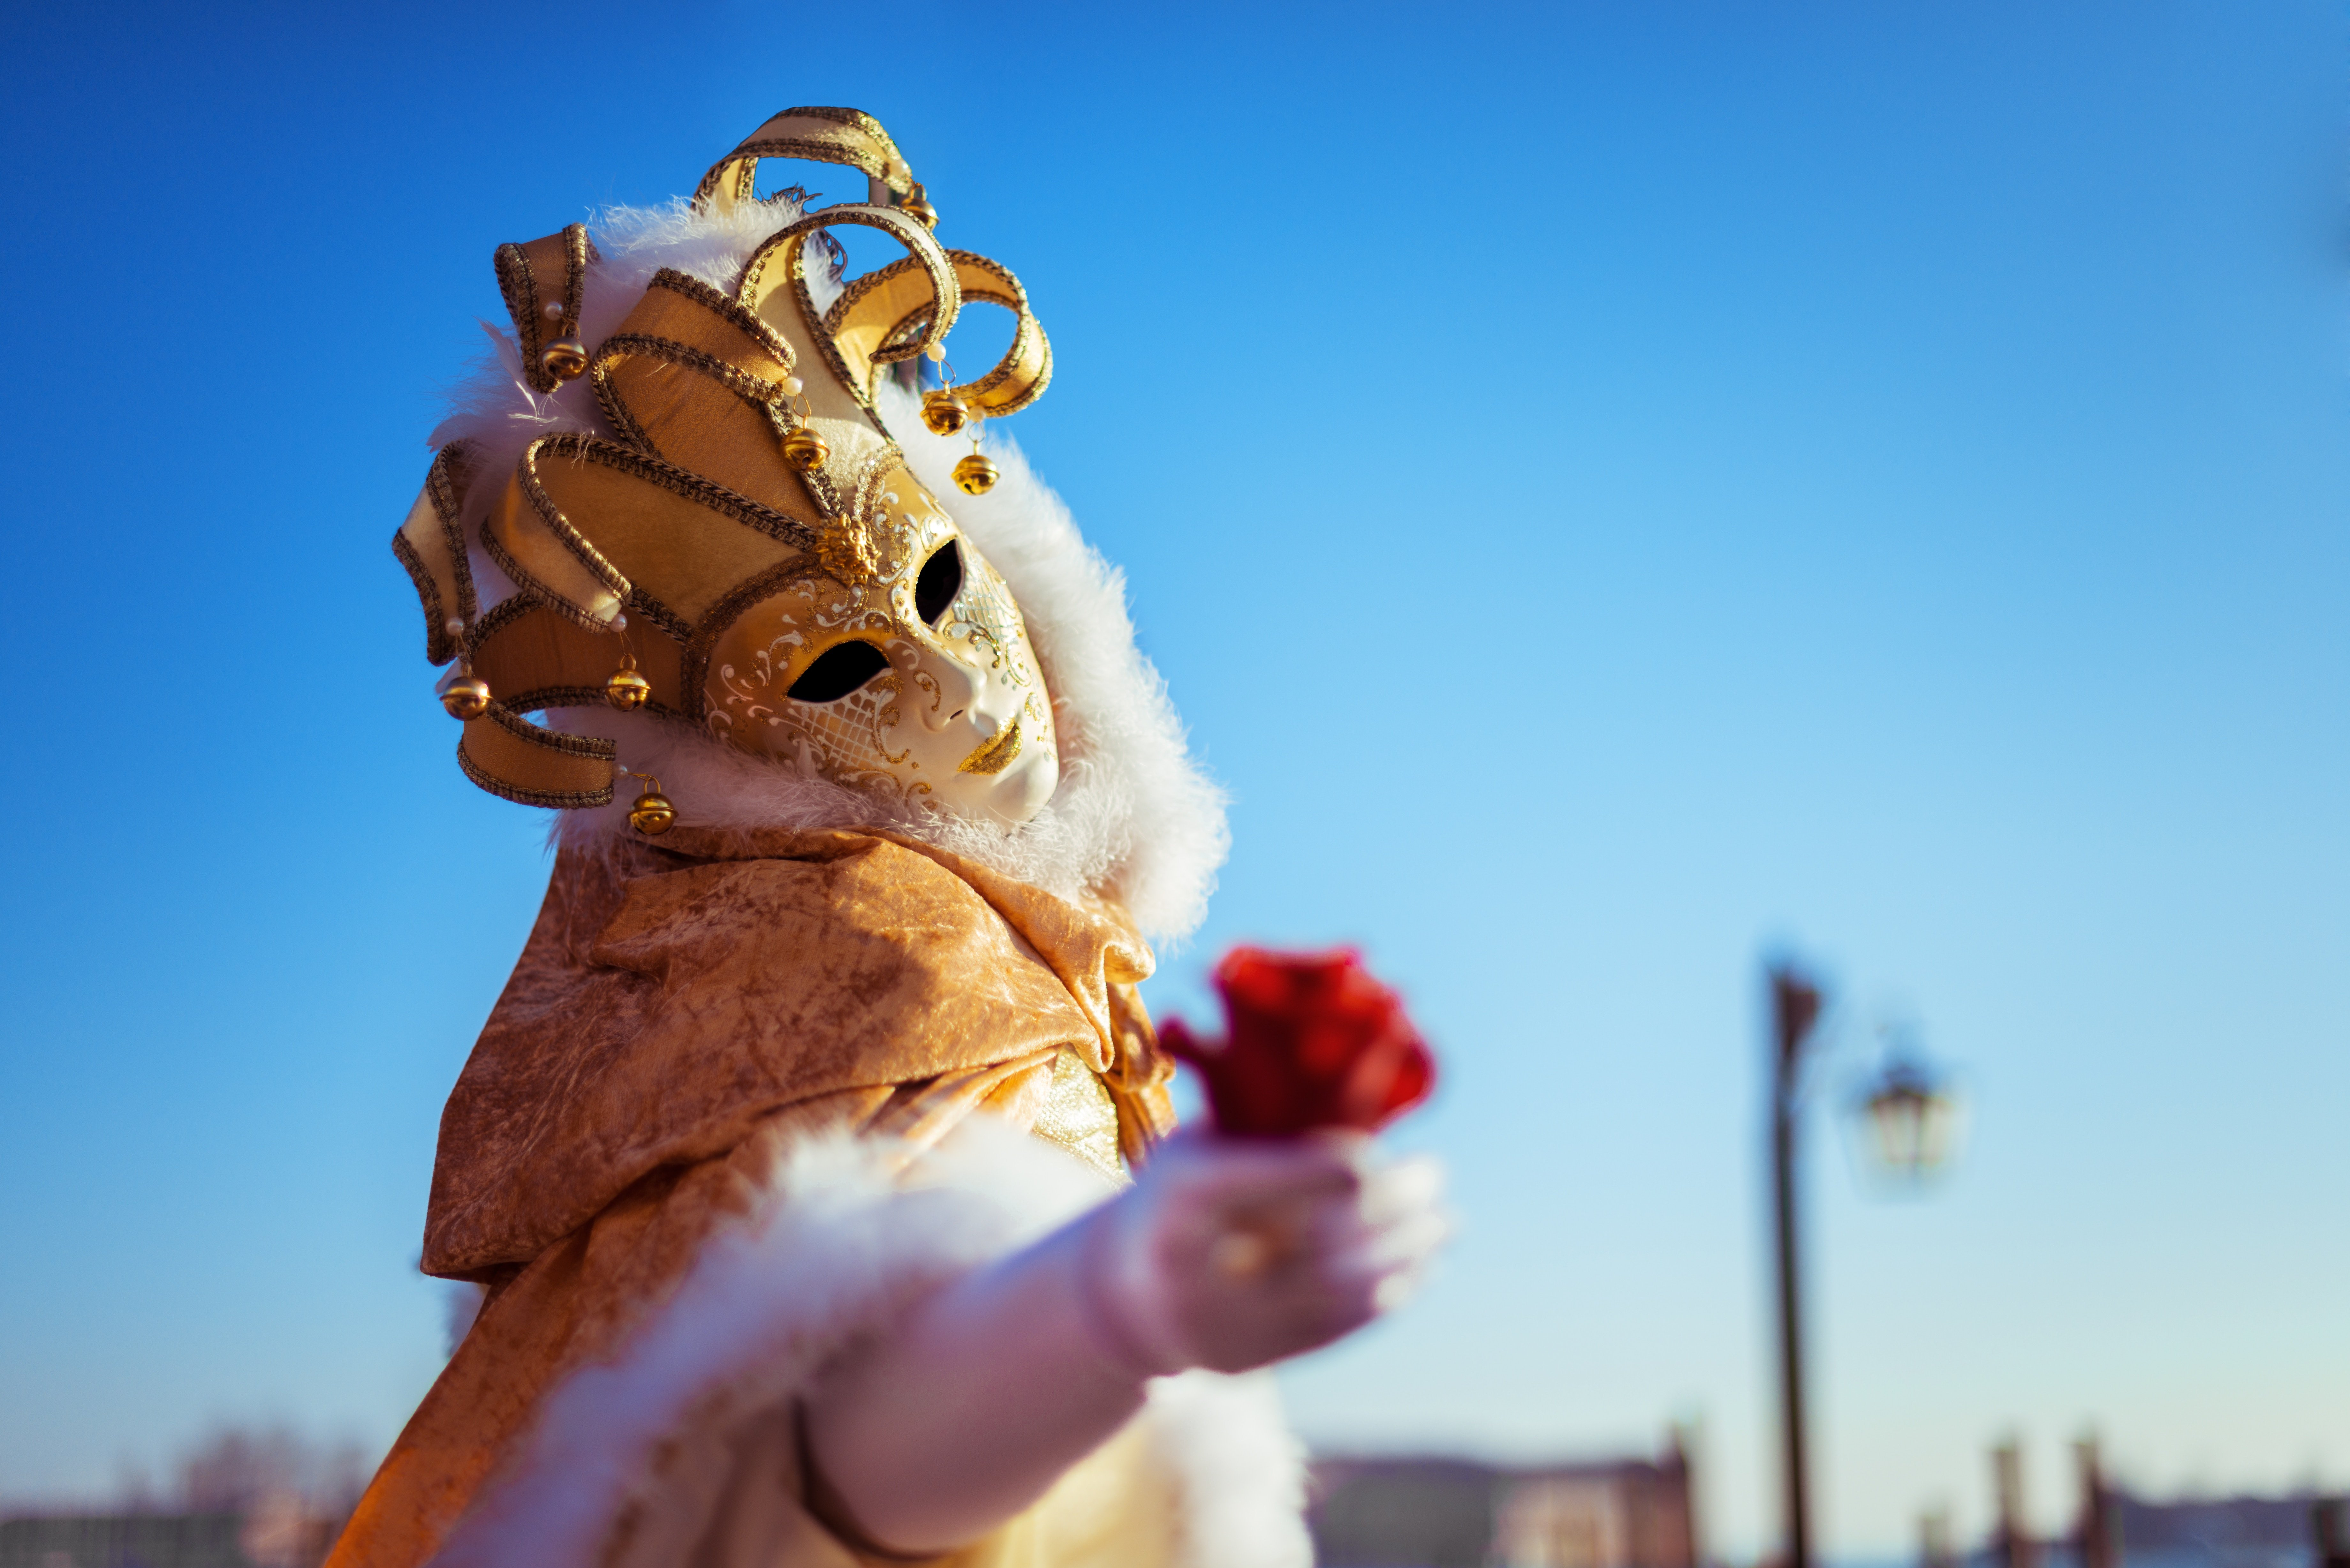 A woman wearing a Venetian costume and holding out a rose at the Carnival of Venice.